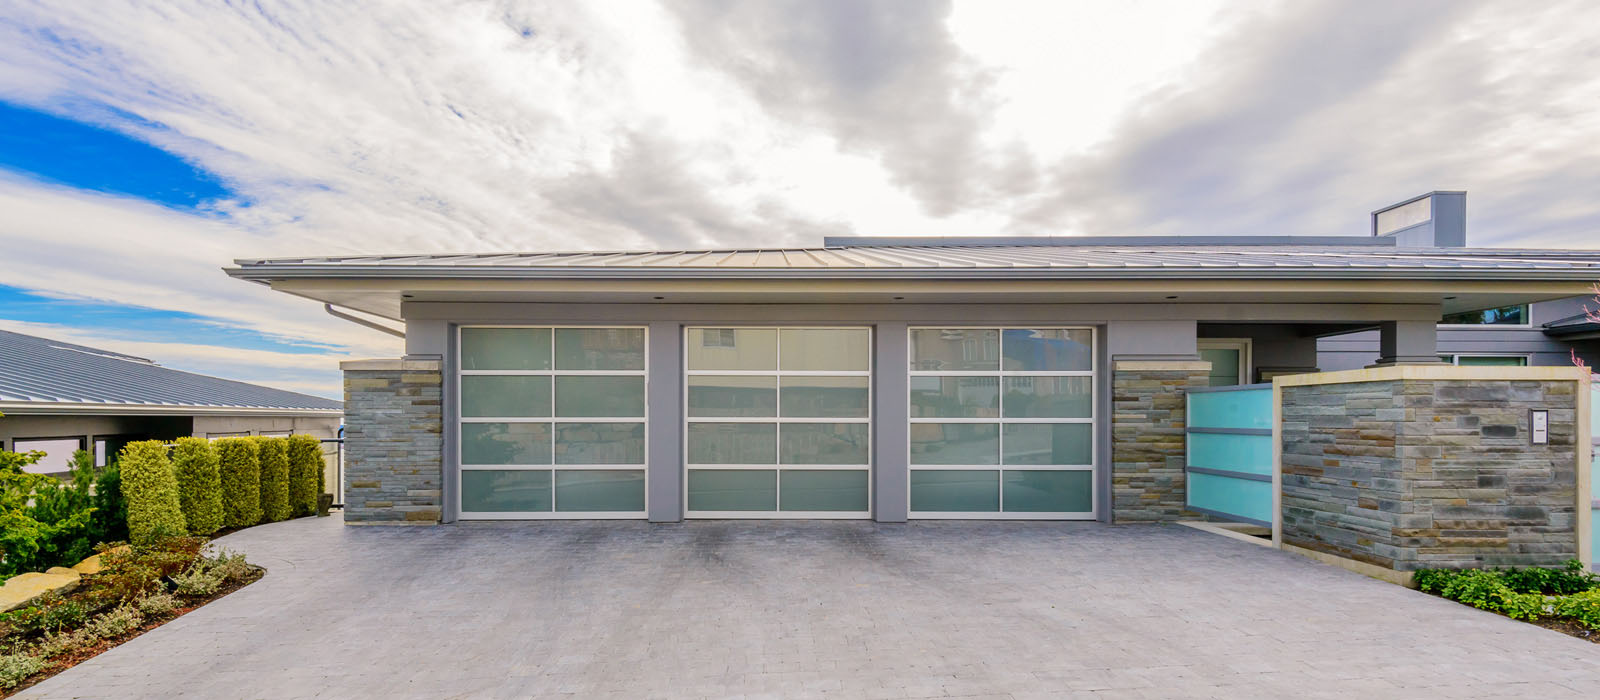 Attrayant Garage Door Repair Ahwatukee